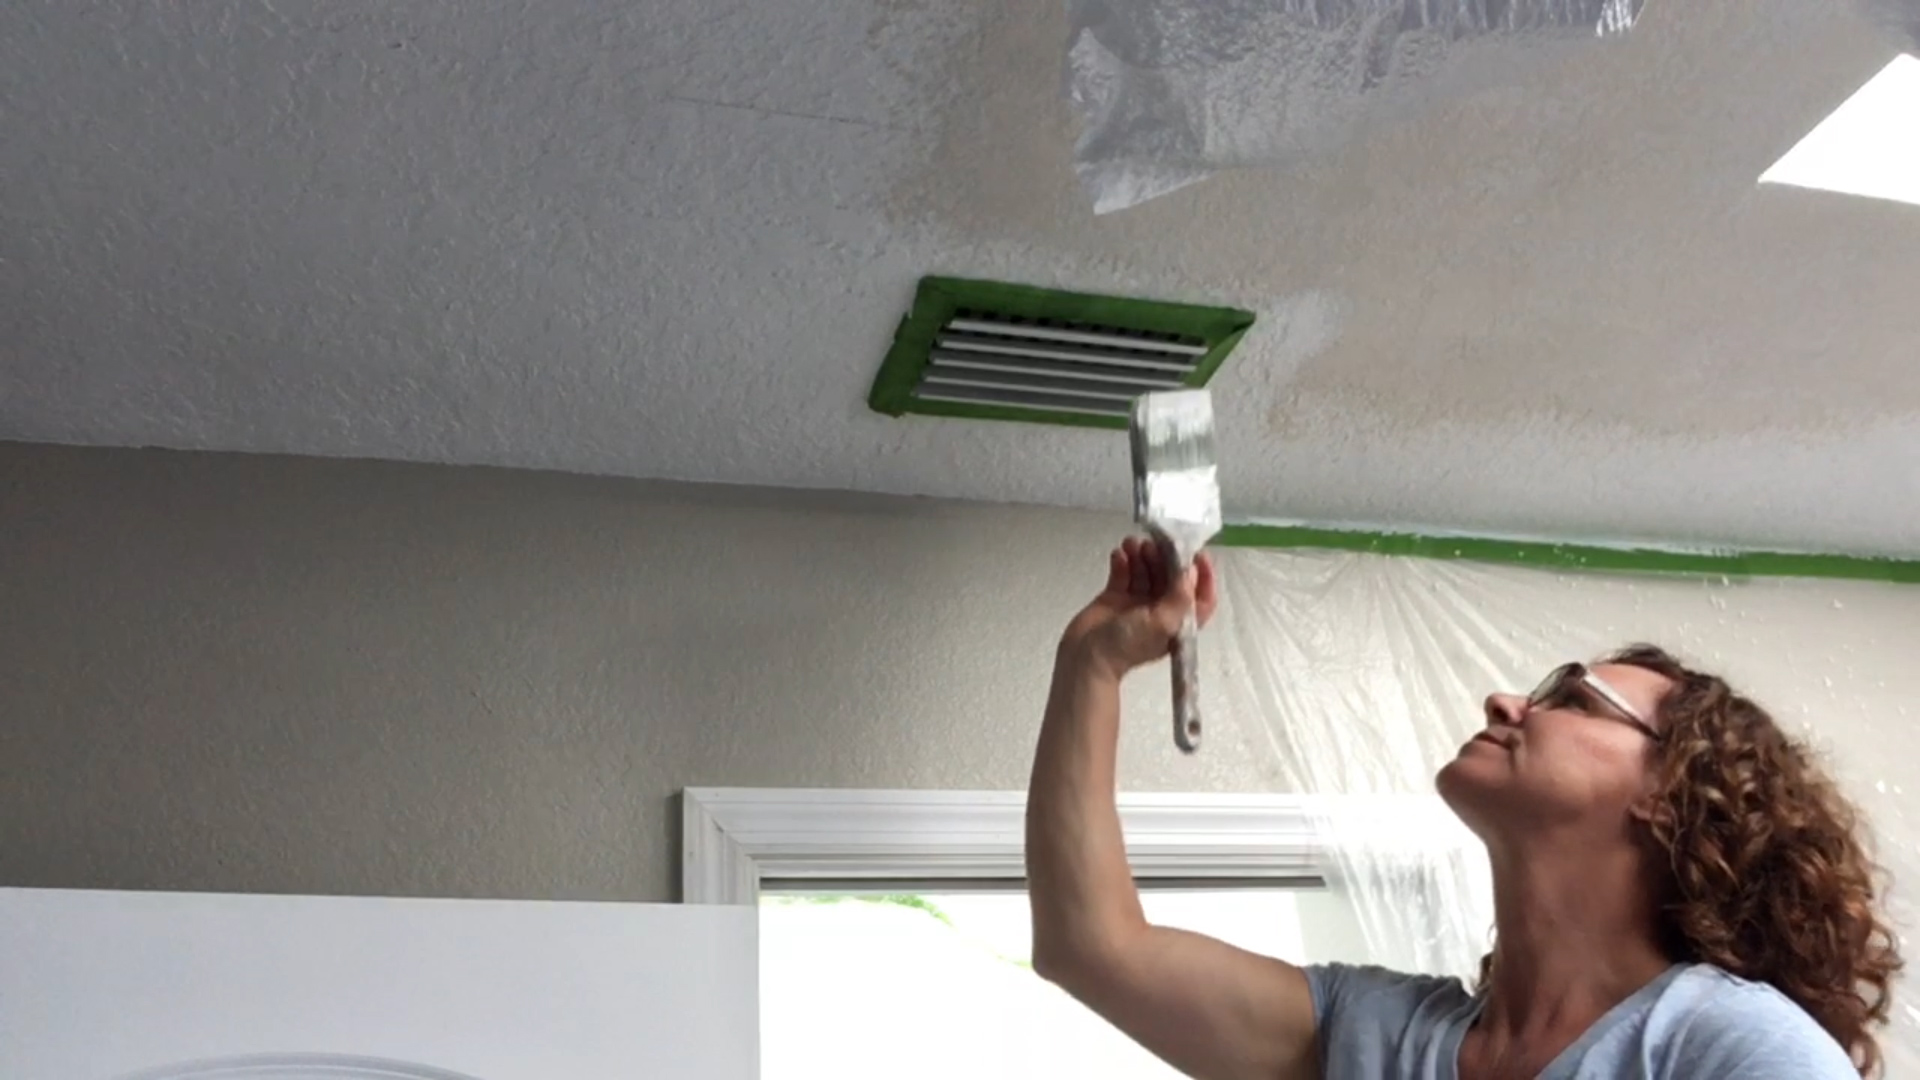 How To Paint Ceilings Beginners Guide Video Tutorial H2obungalow